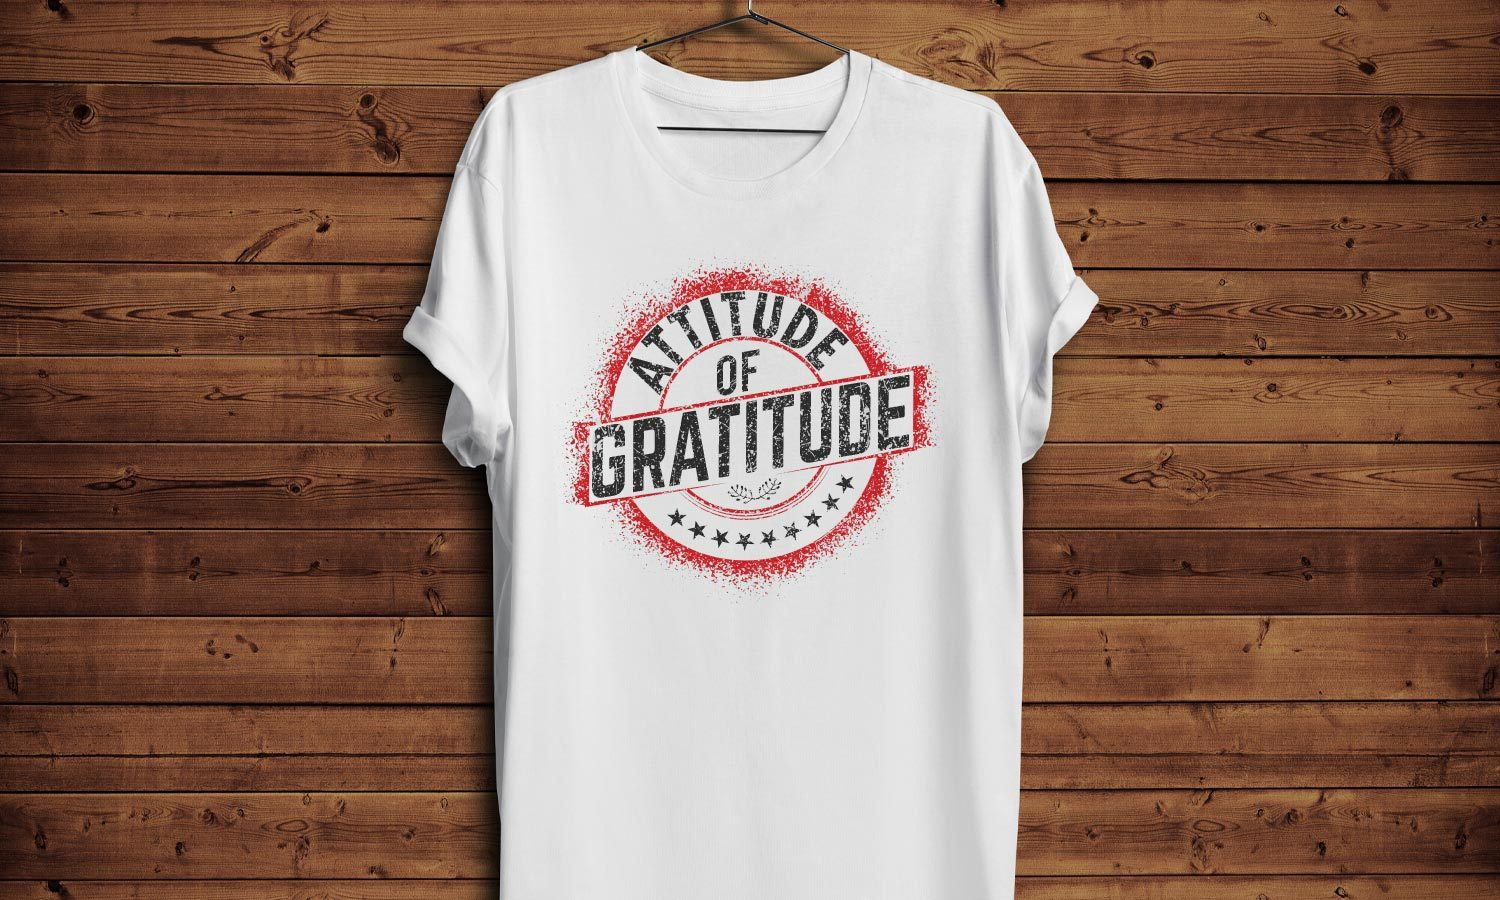 Gratitude - Printed T-Shirt for Men, Women and Kids - TS149